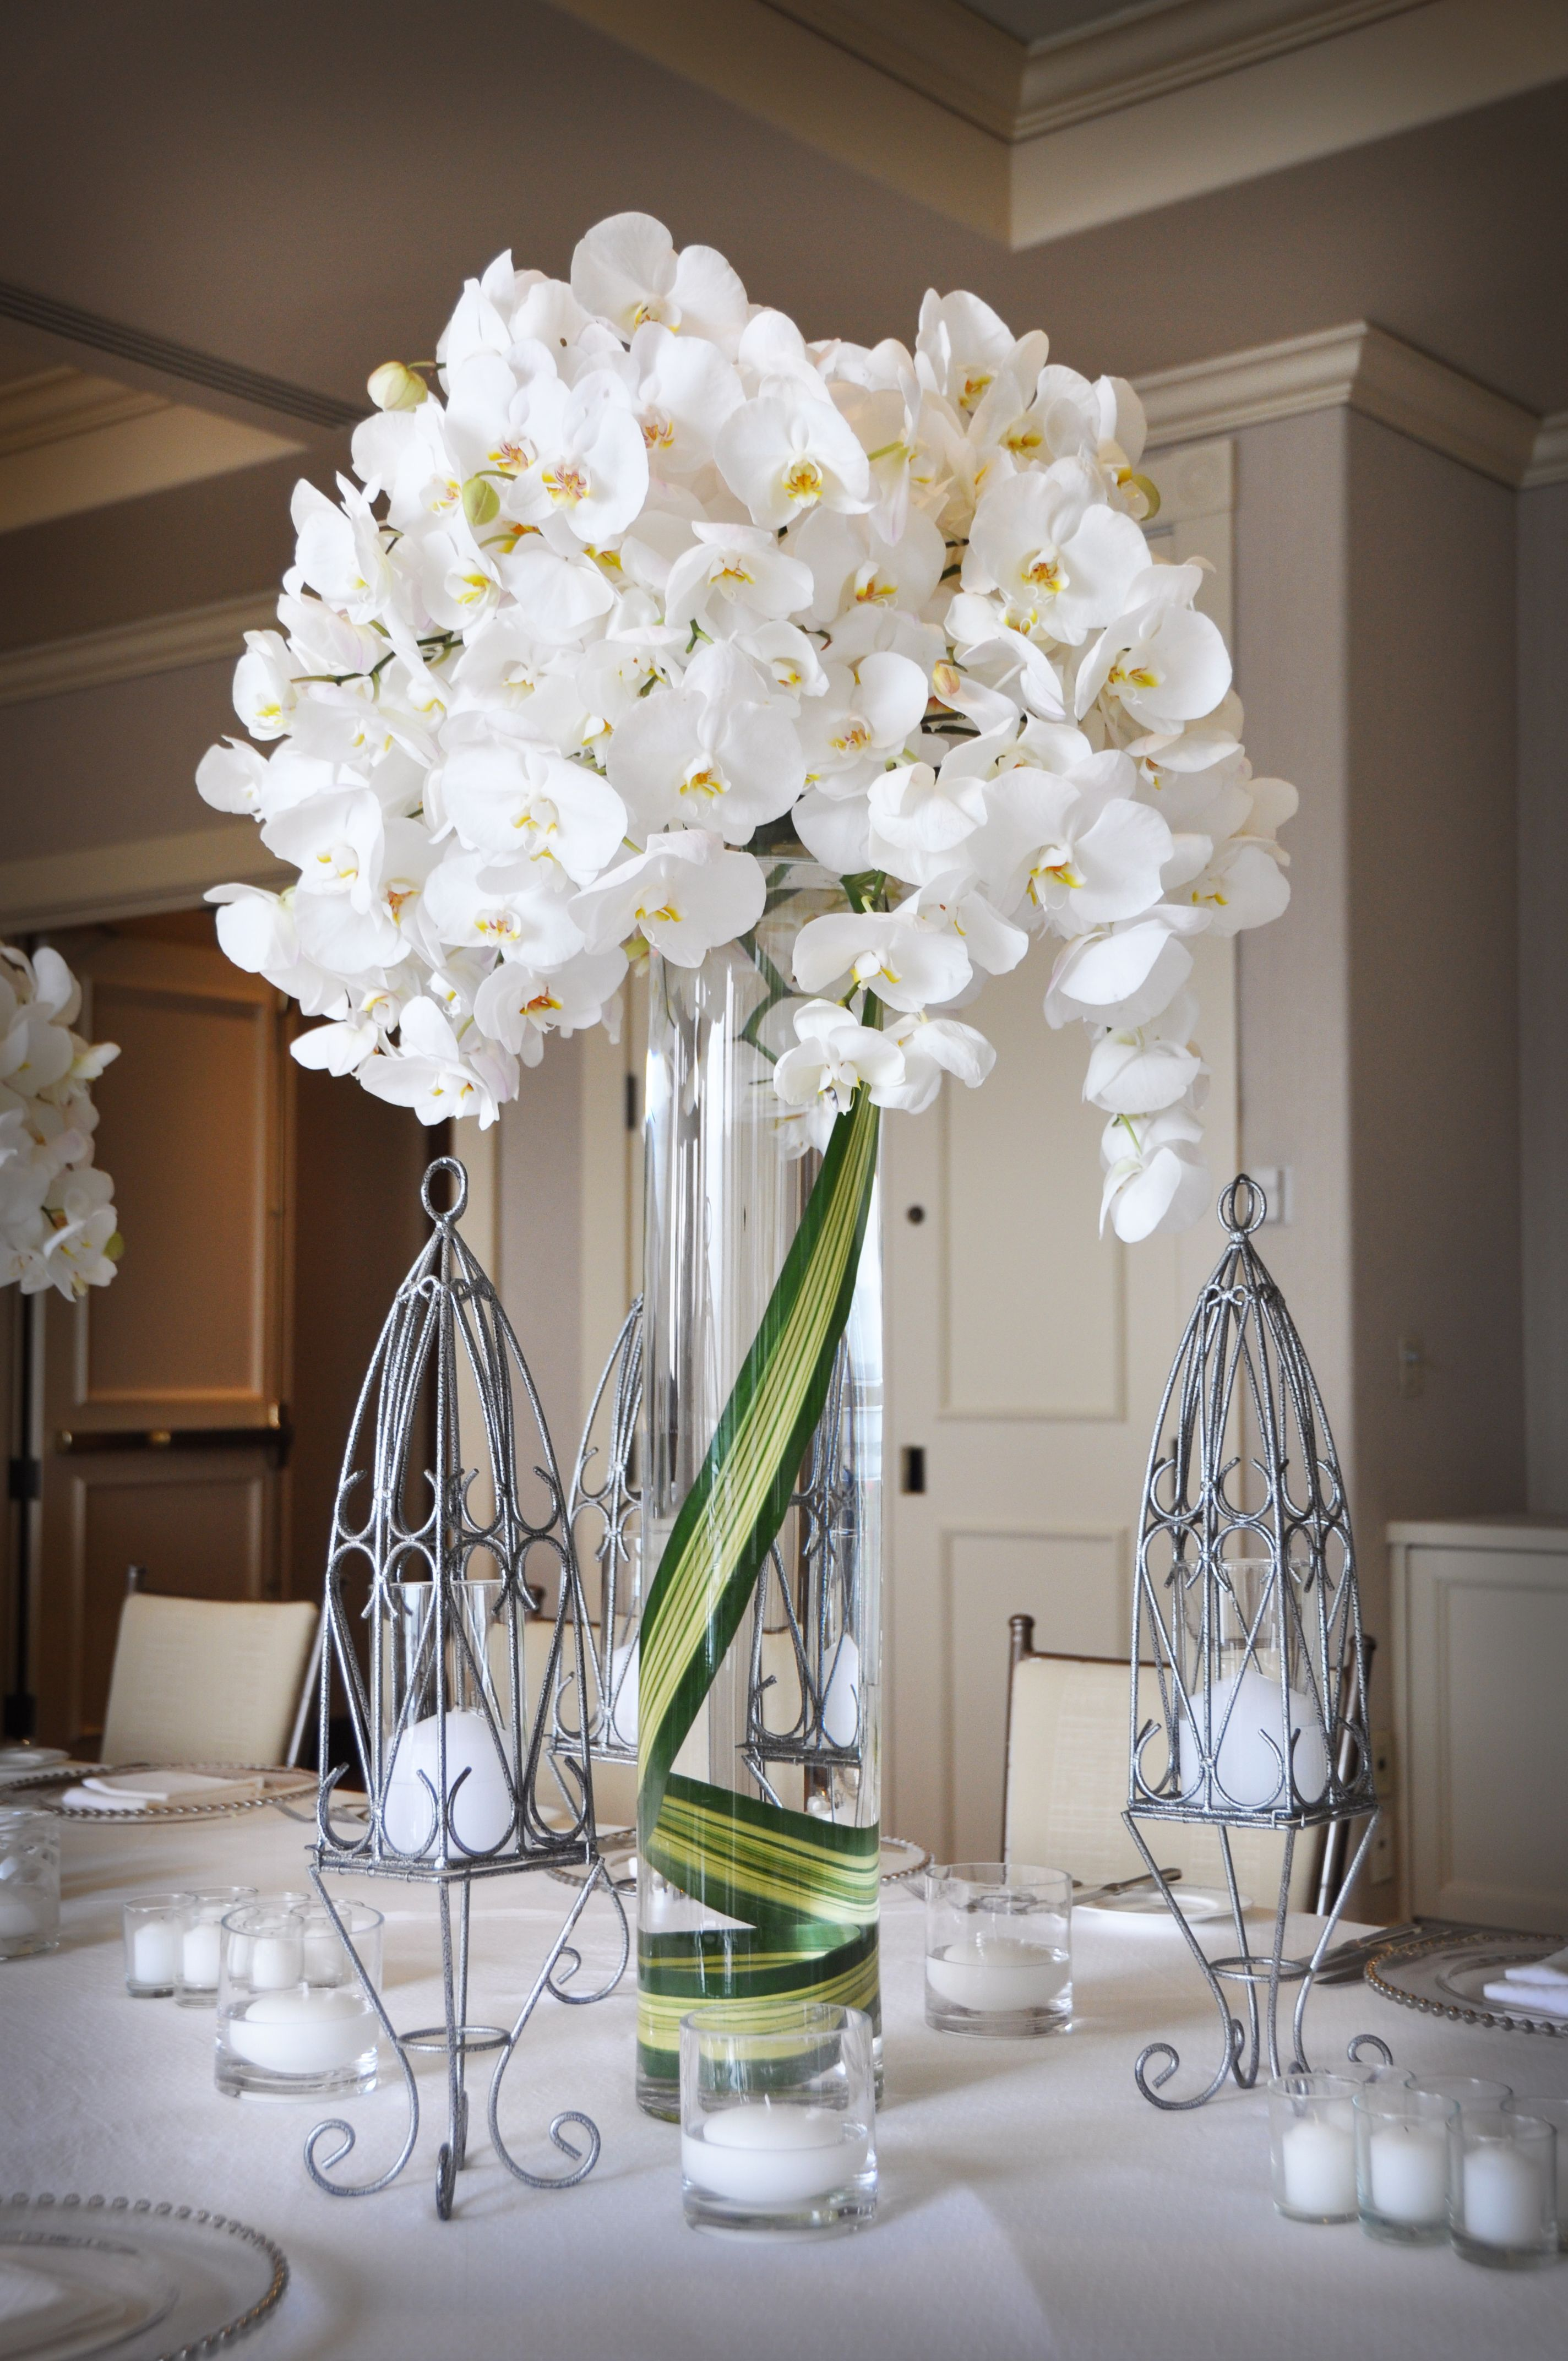 Ill have something similar to this on either side of my cake white orchids leaves inside the vase reviewsmspy